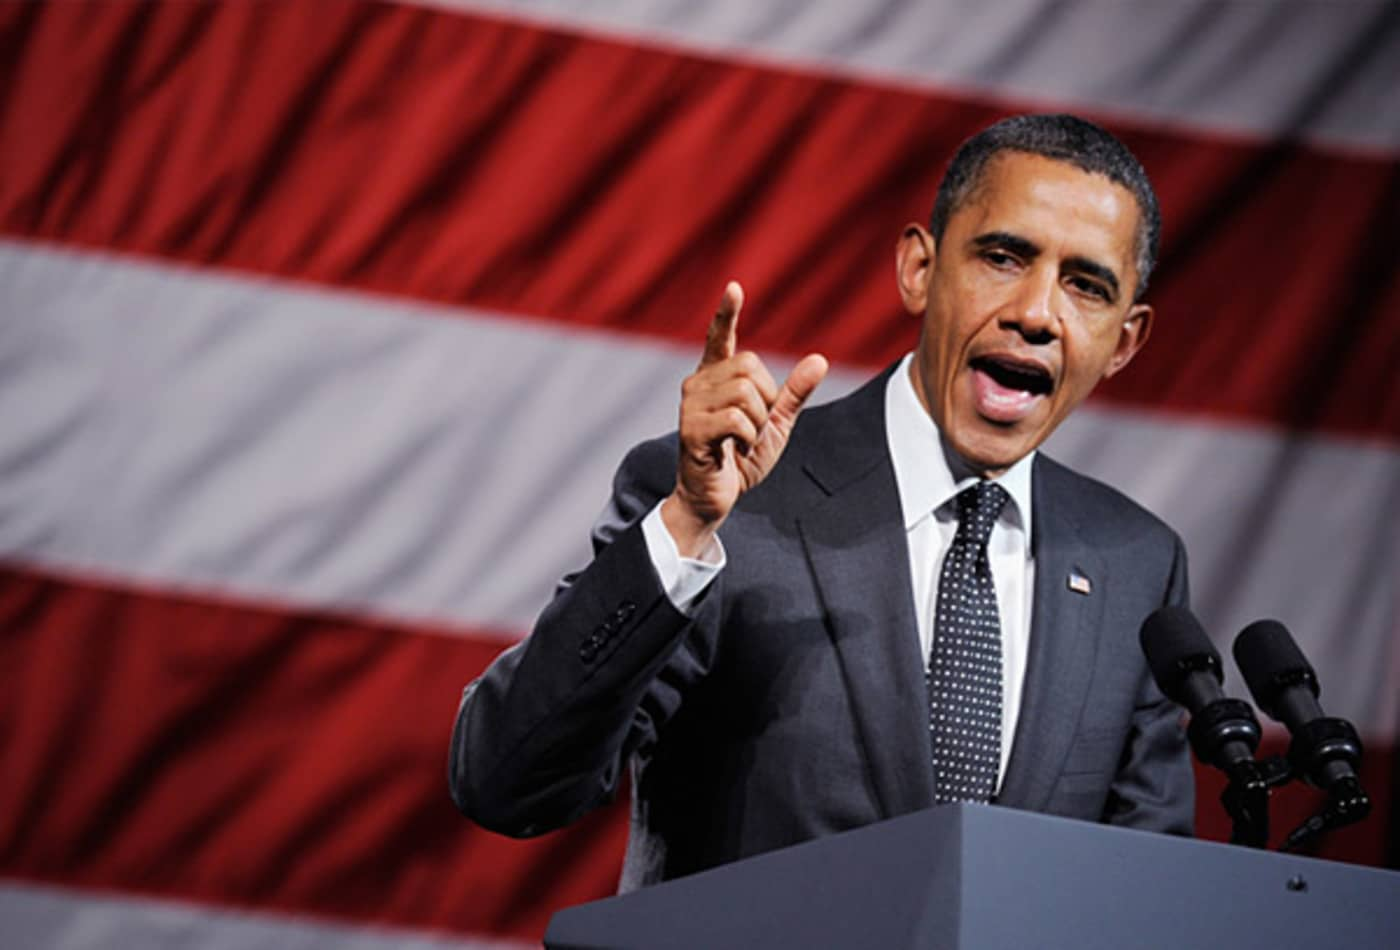 Top-Business-Stories-2011-obama.jpg